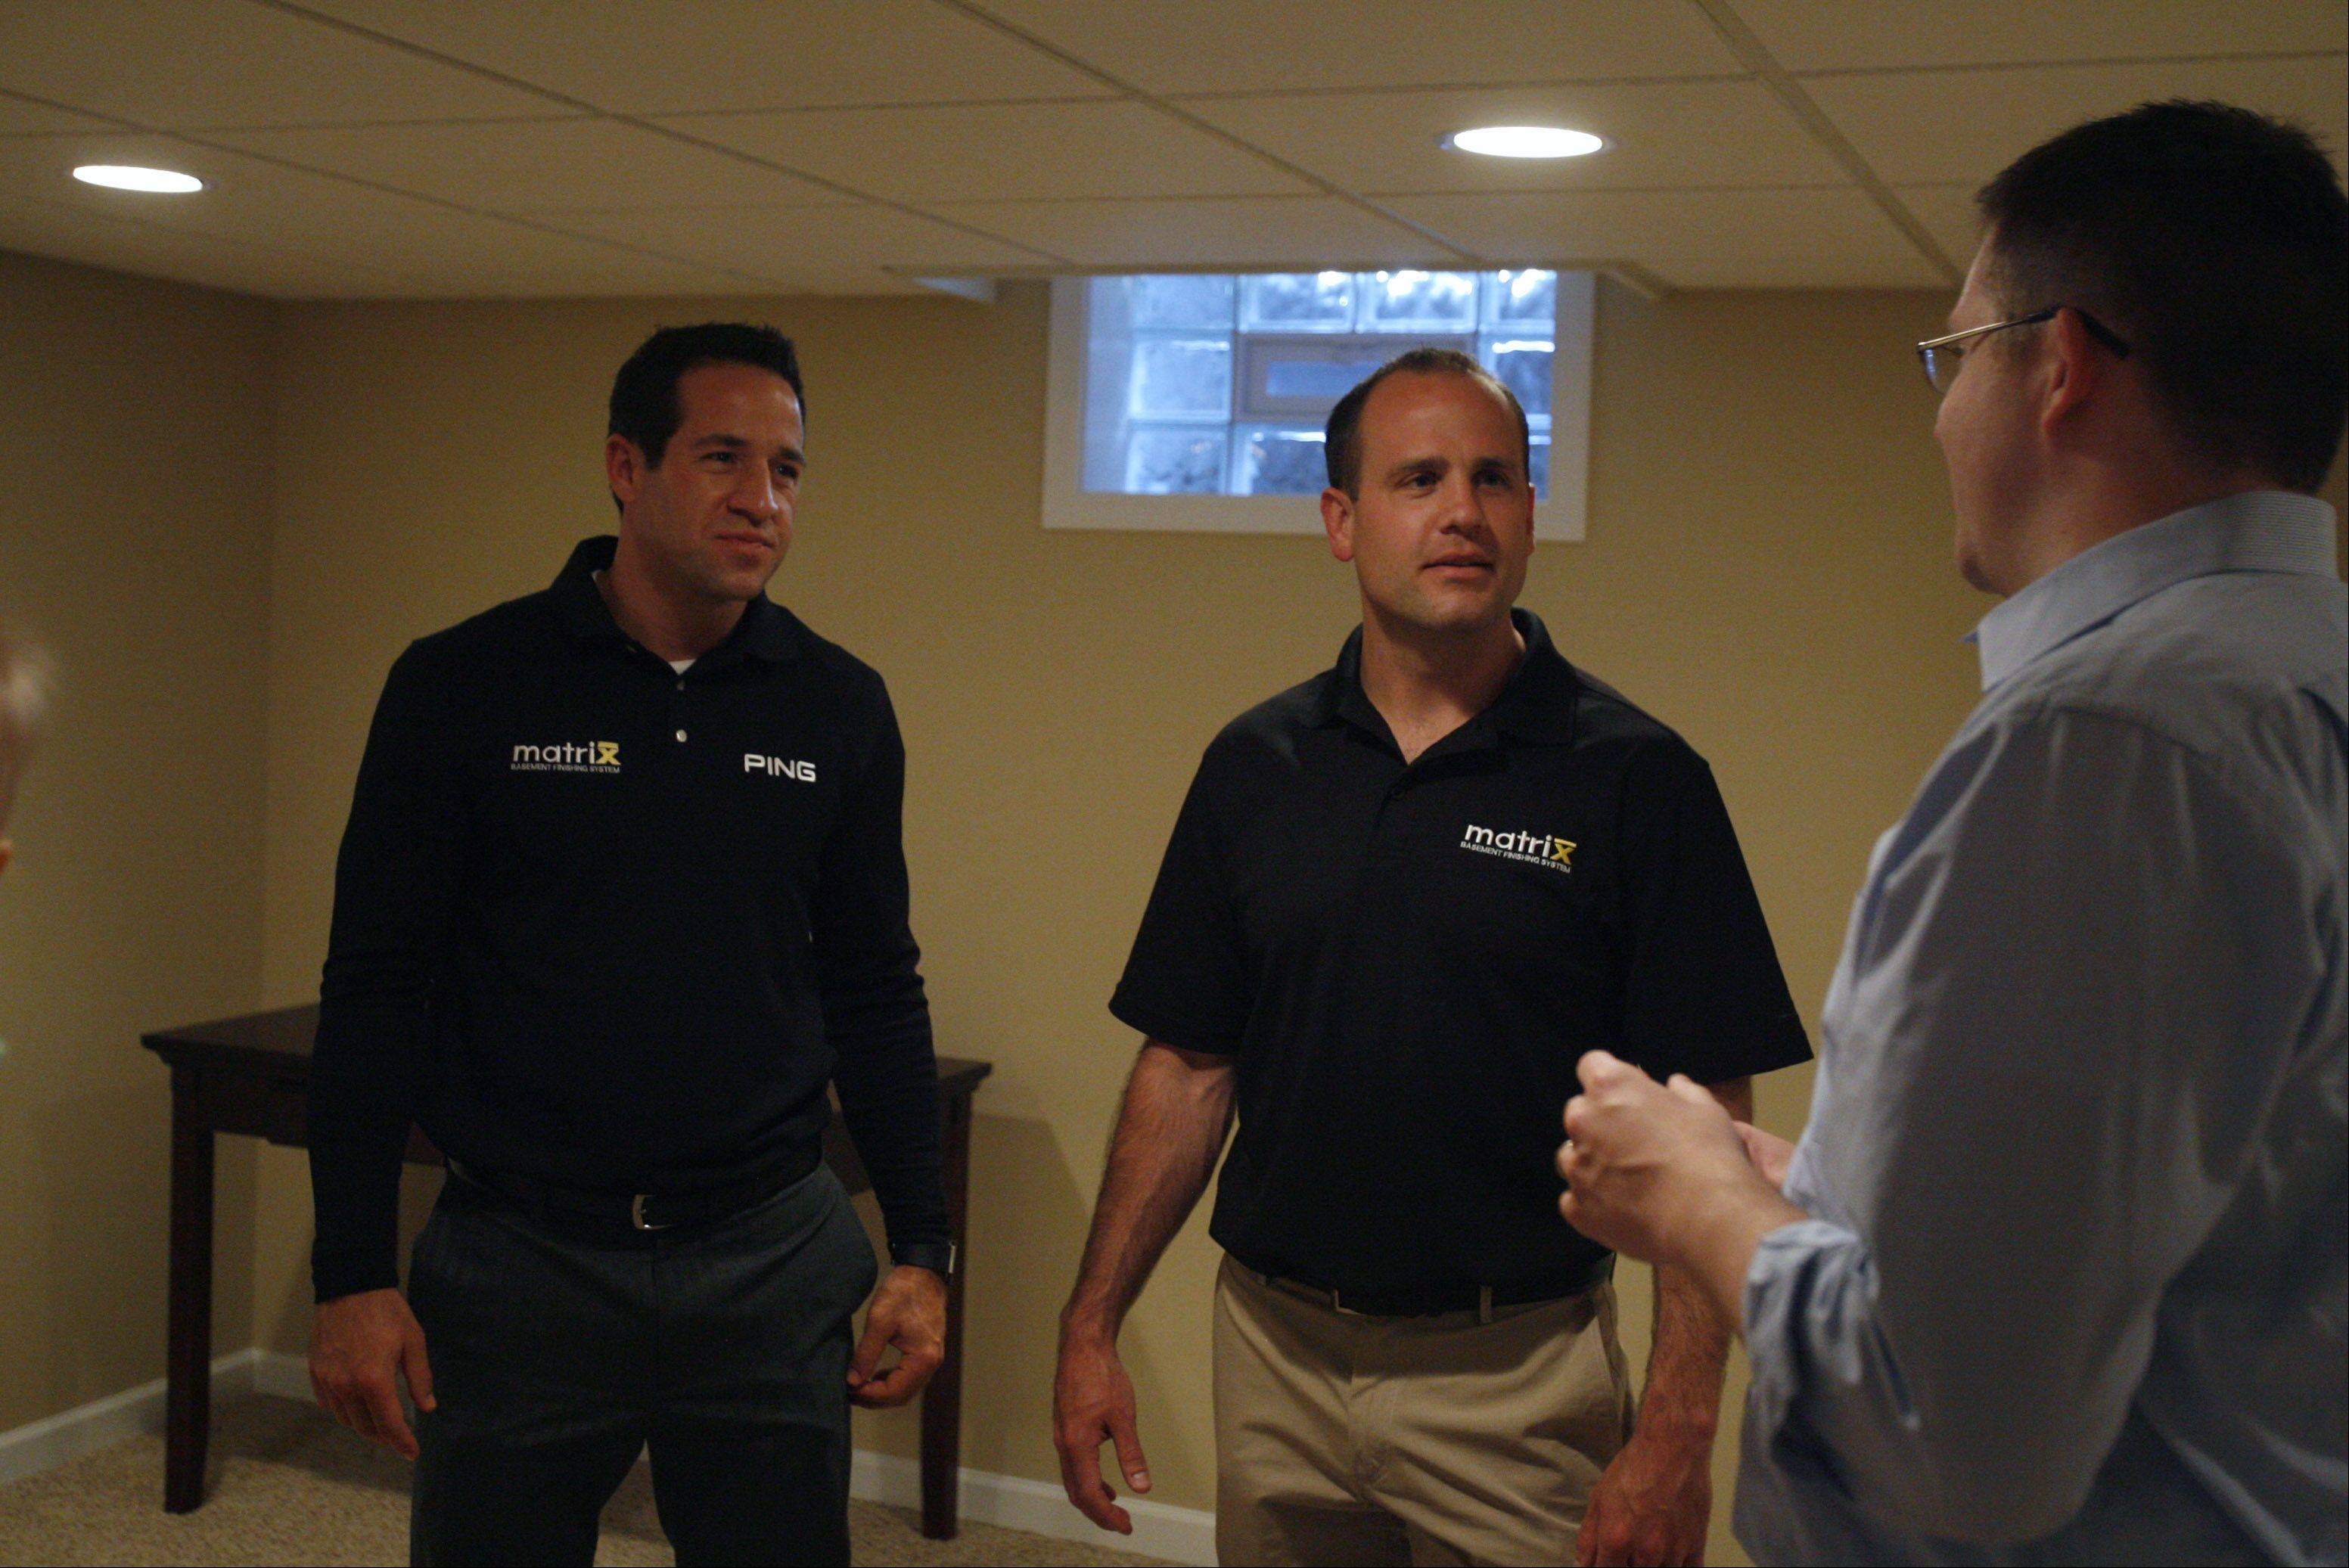 Matt Edwards, right, talks about his new basement with Matrix Basement Finishing System co-owner and president Nick Richmond, director of sales, left, and co-owner Brian Barrick.